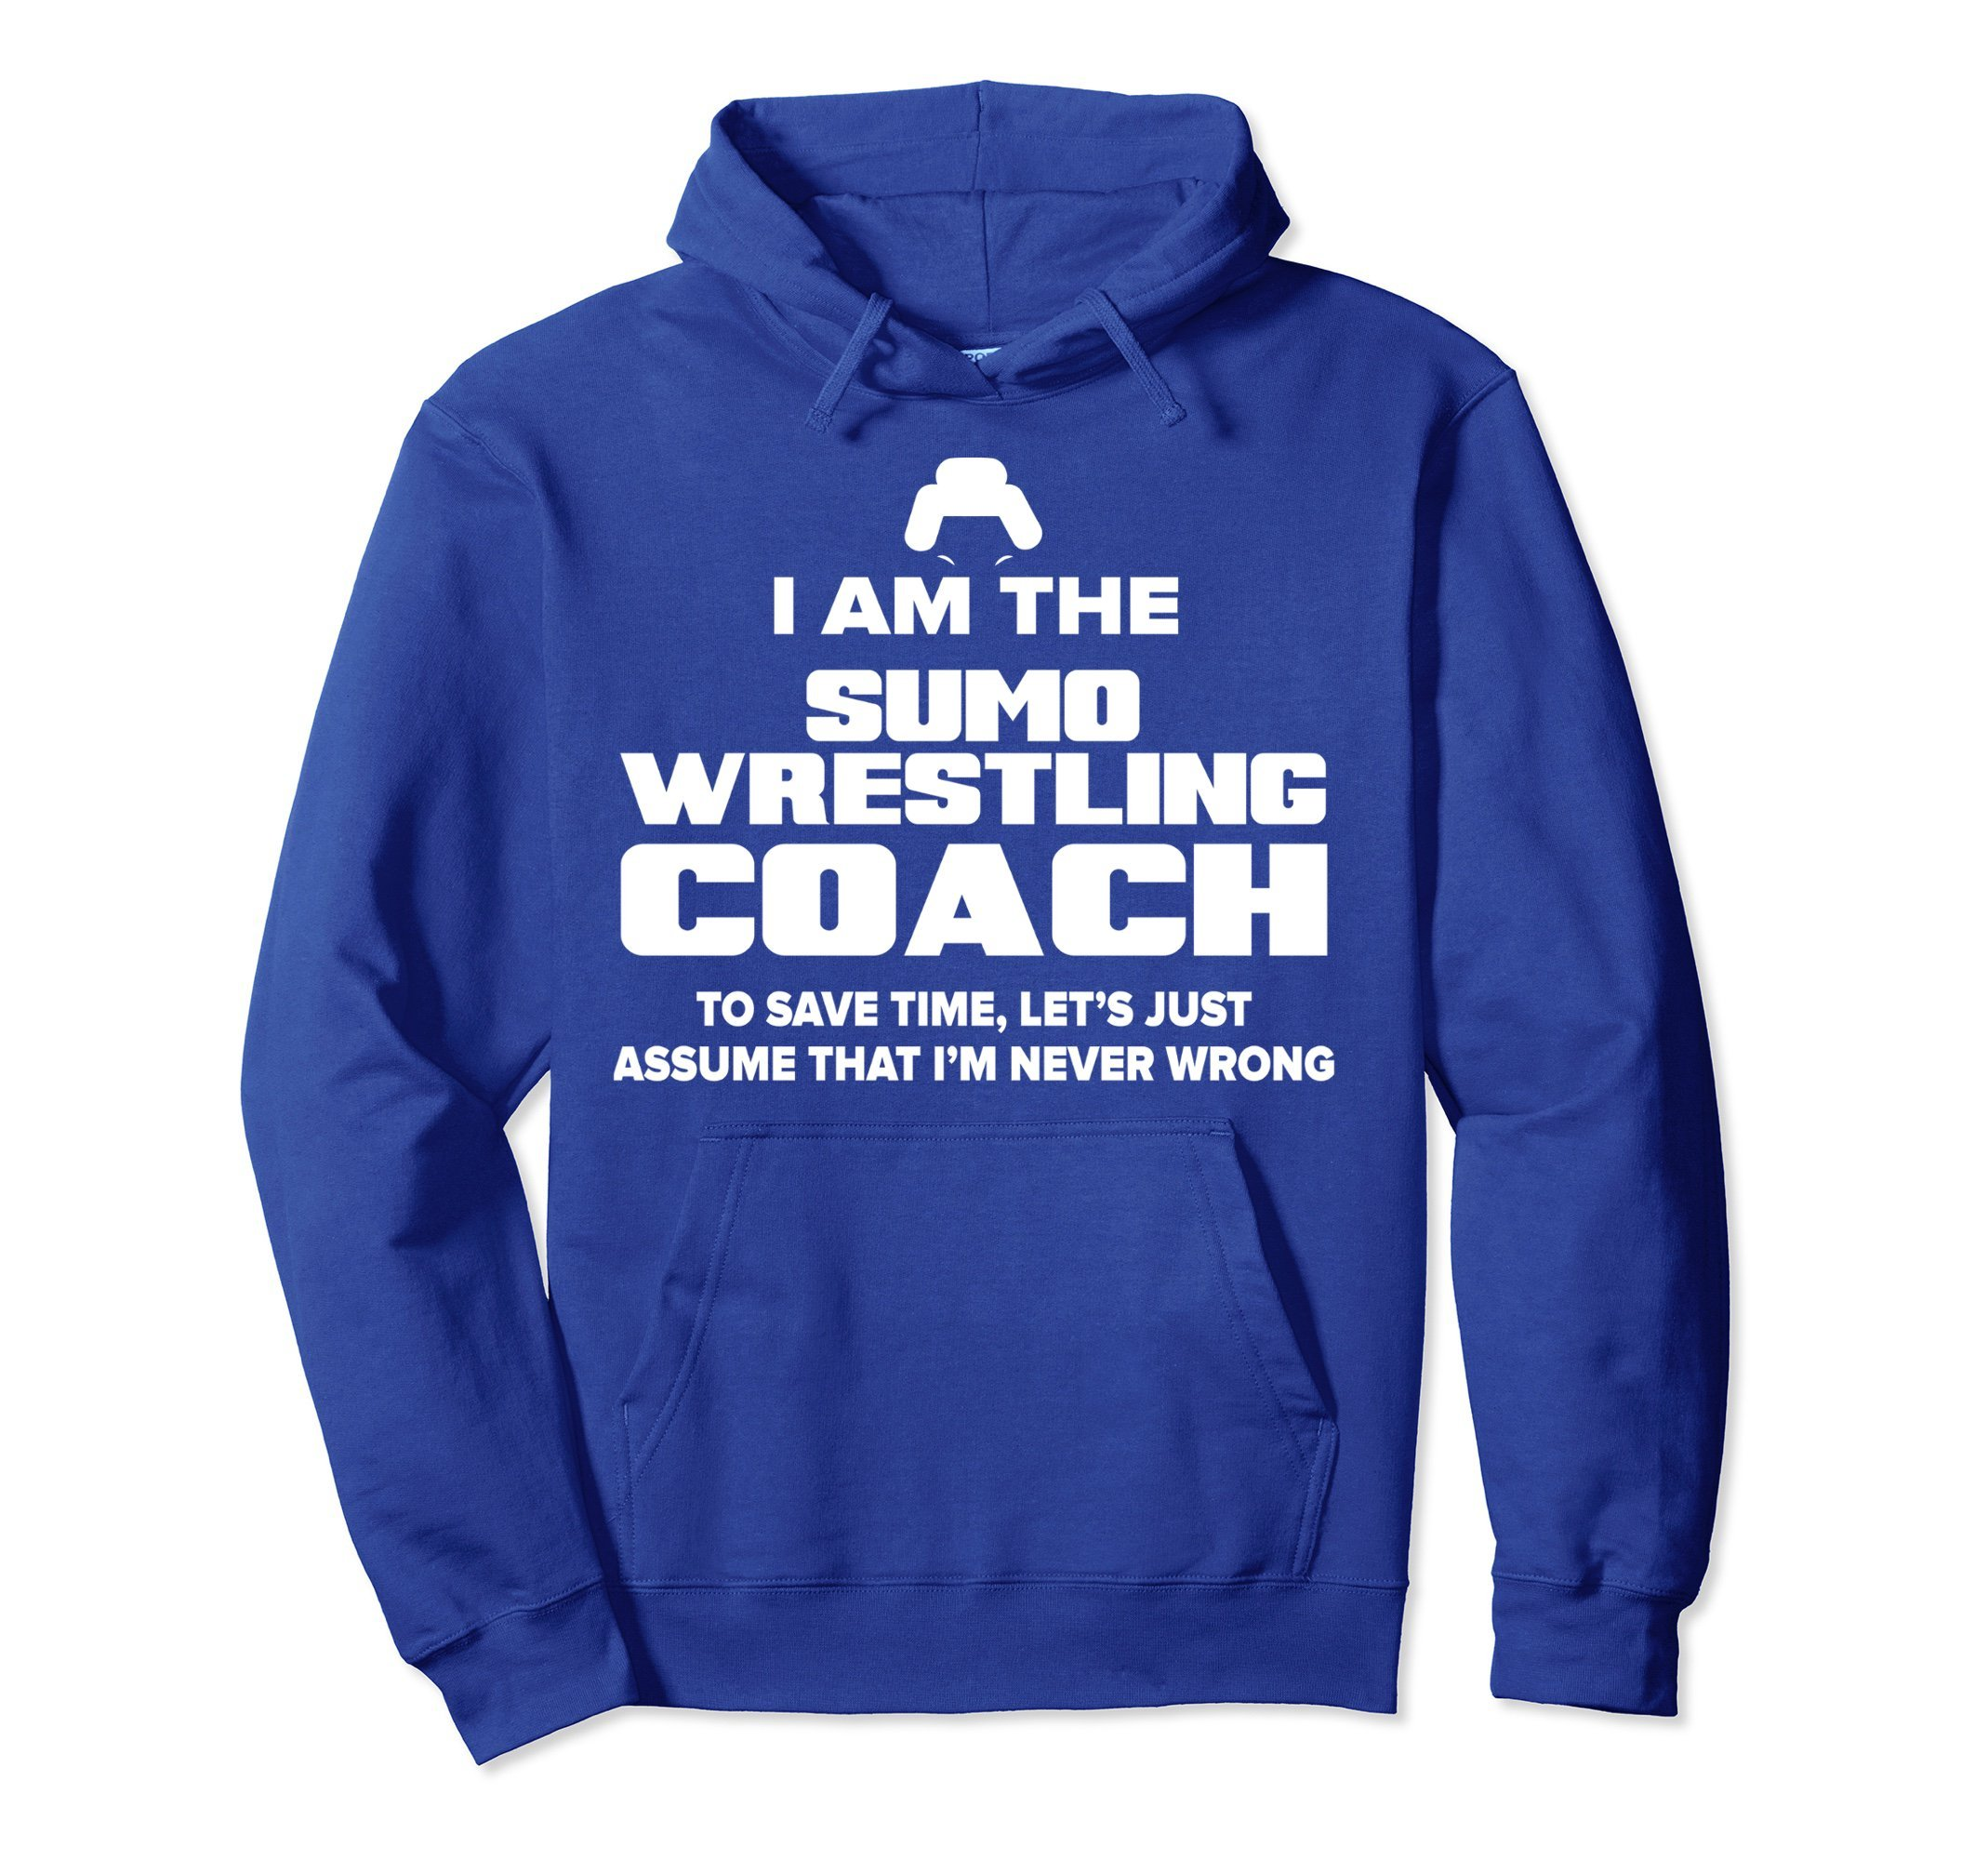 Unisex Sumo Wrestling Coach Pullover Hoodie - I'm Never Wrong! 2XL Royal Blue